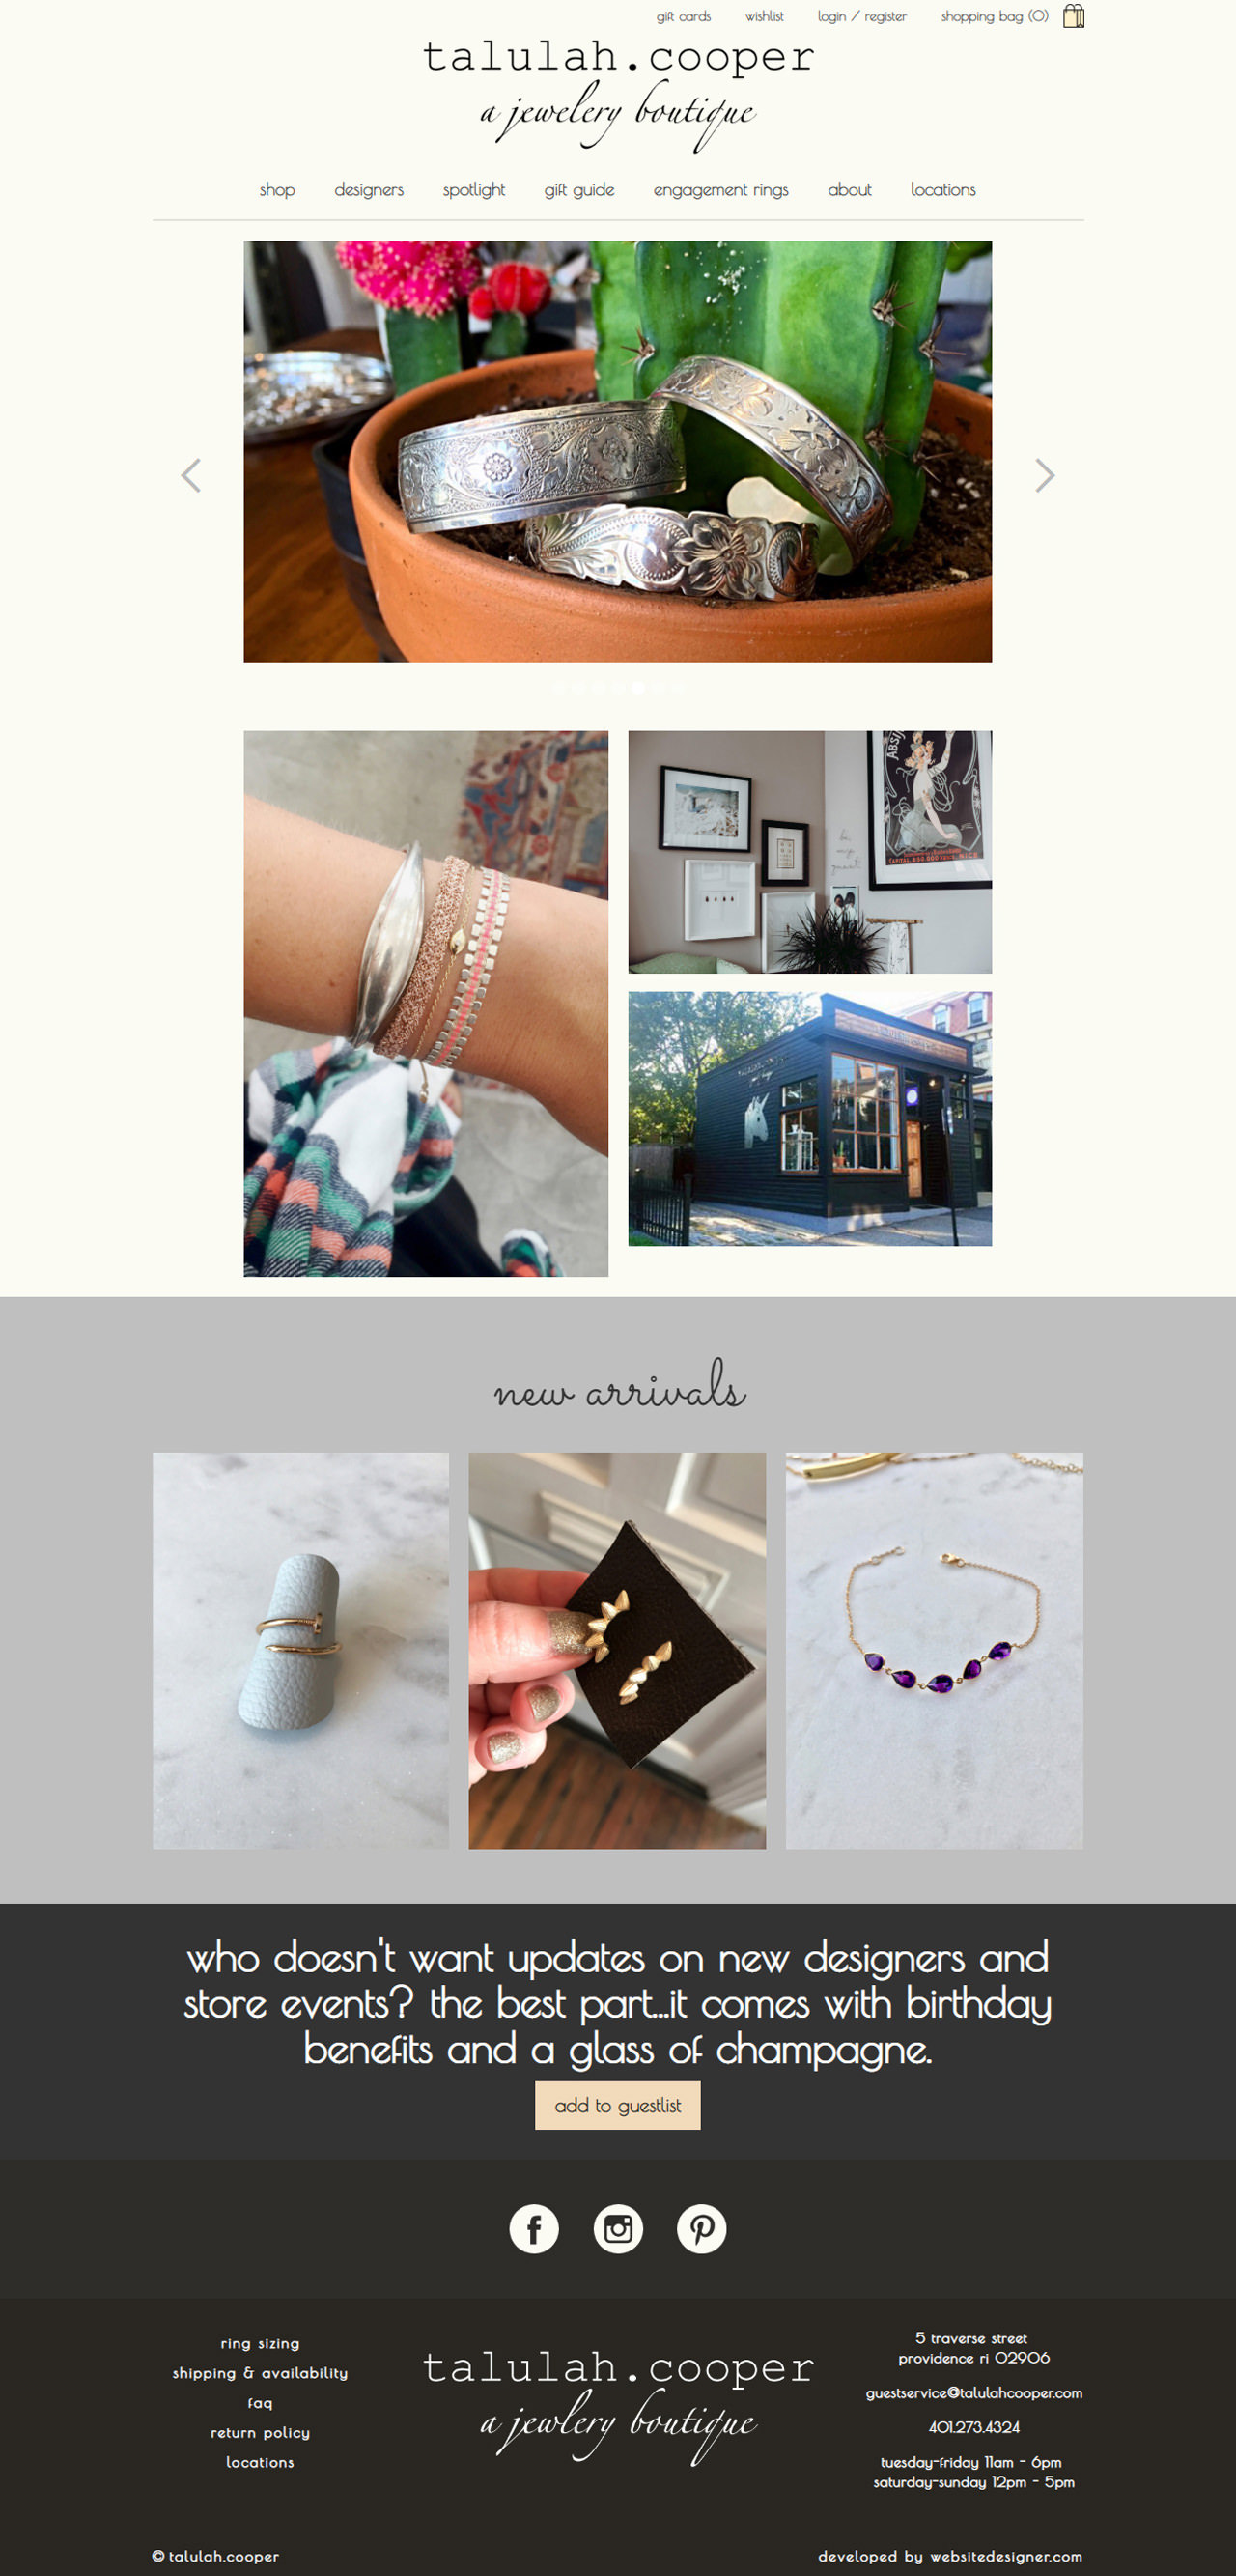 Talulah Cooper a Jewelry Boutique Home Page